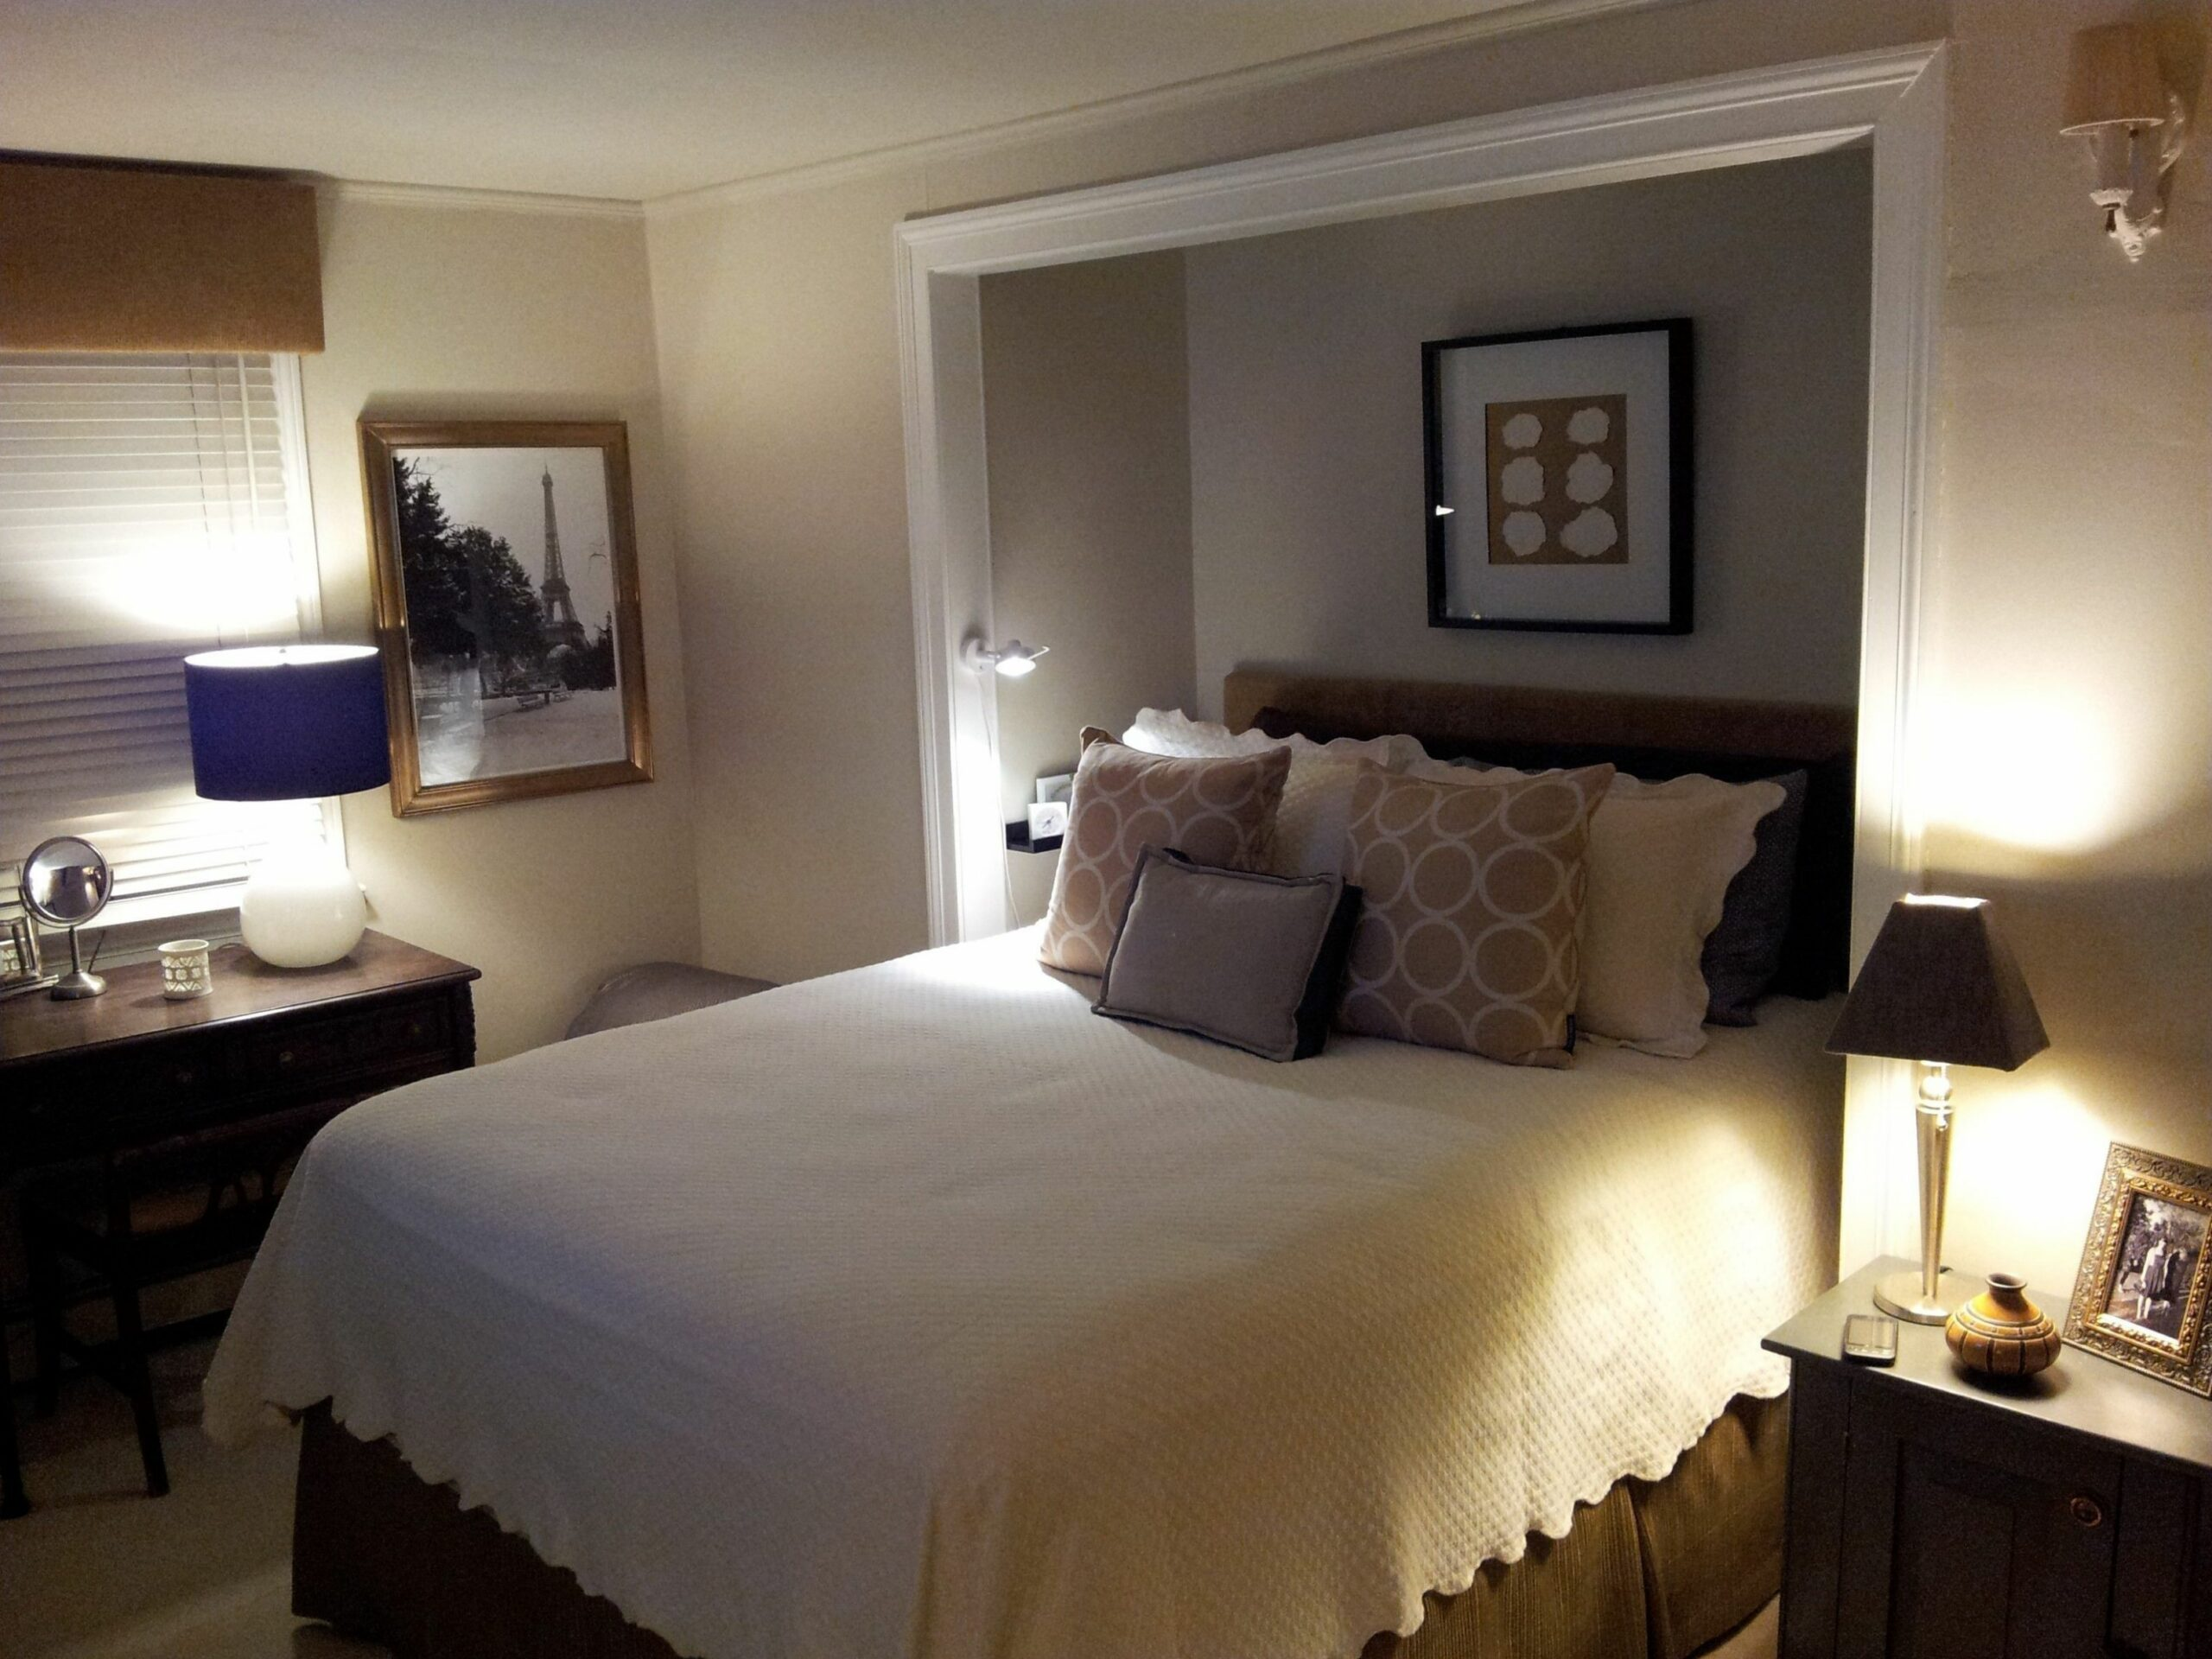 12 Creative Small Bedroom Ideas With Queen Bed And Wardrobe | Small ..